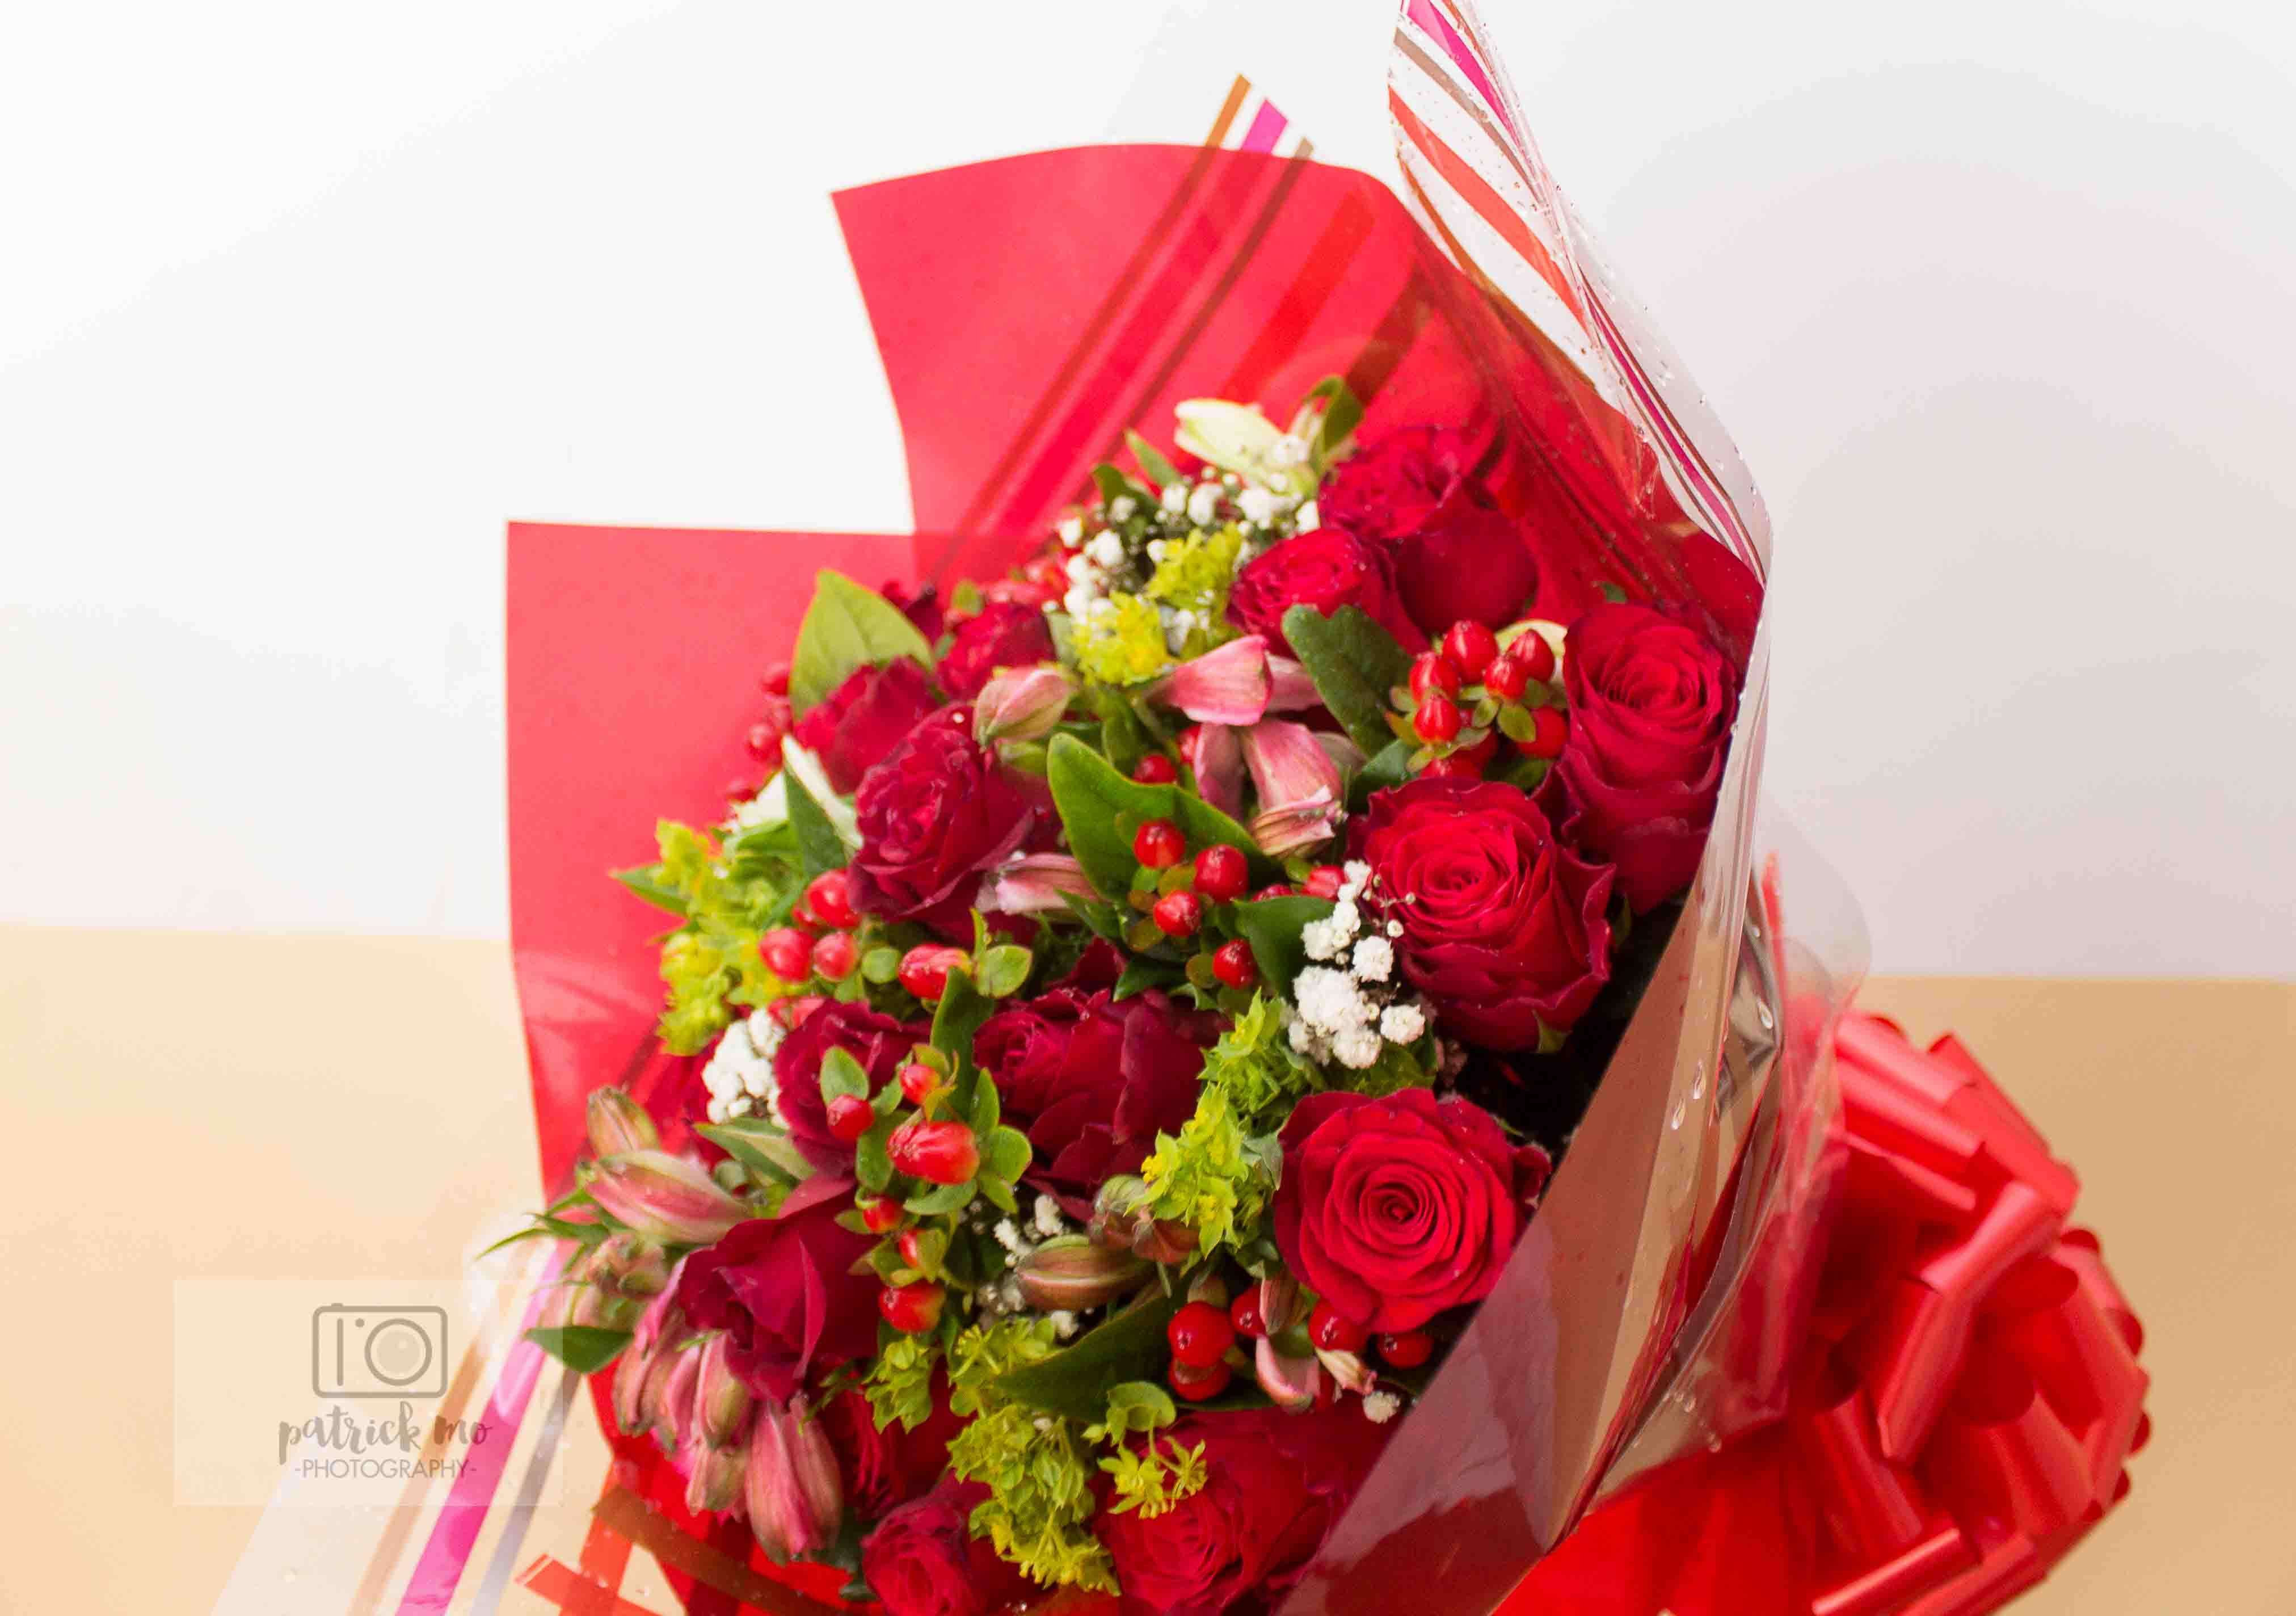 20 Romantic Gifts Ideas For Valentine S Day Valentine S Day Gift